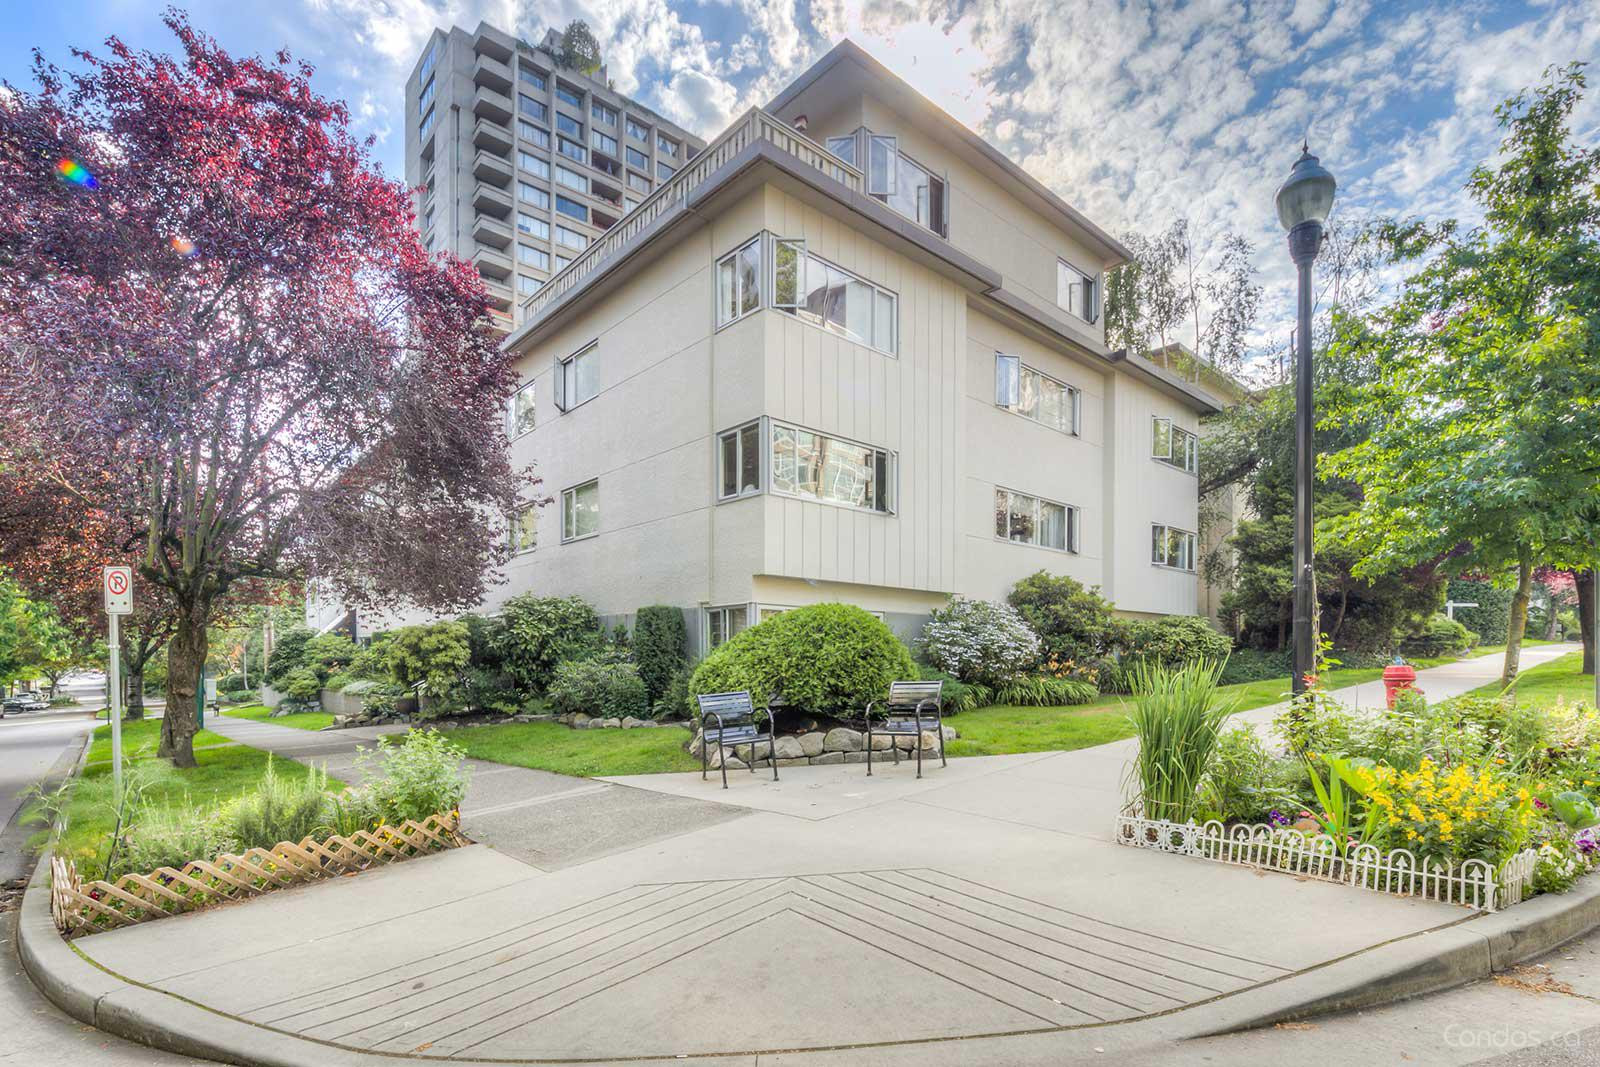 Jervis Manor at 1050 Jervis St, Vancouver 1